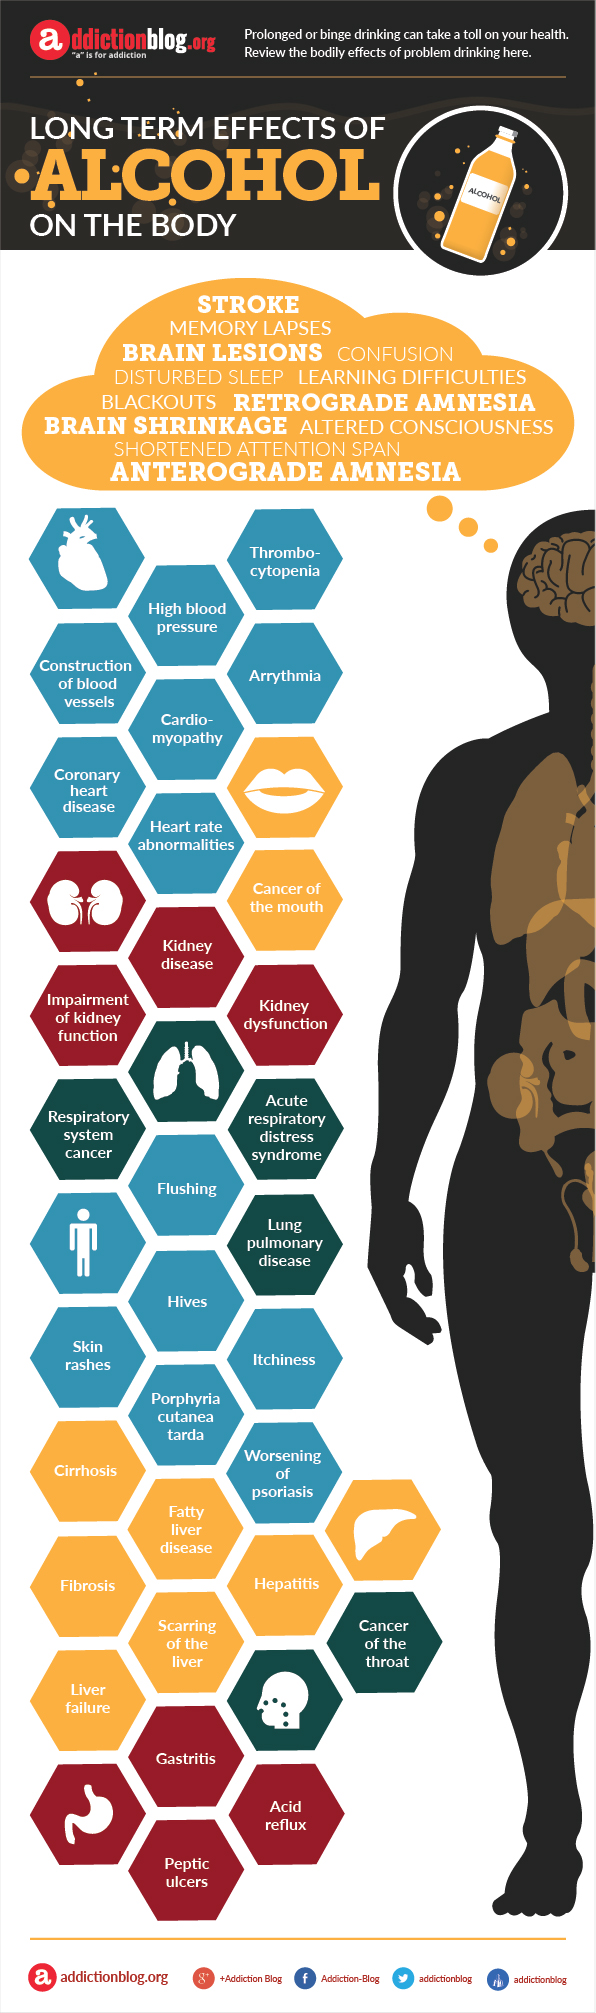 Long term effects of alcohol on the body (INFOGRAPHIC)